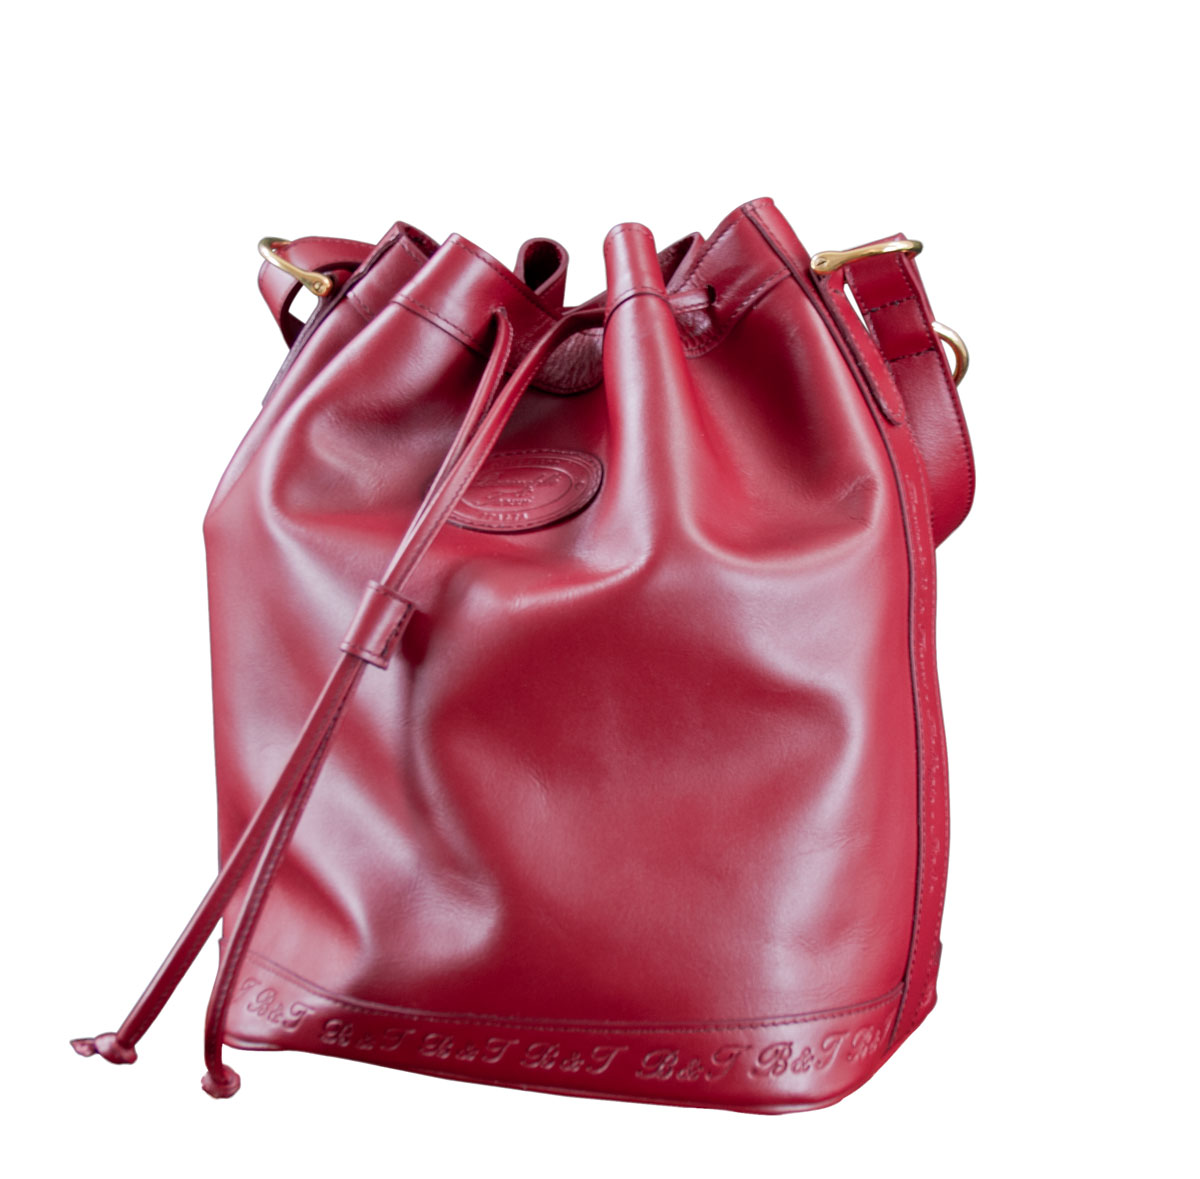 Leather Bucket Bag - Bordeaux